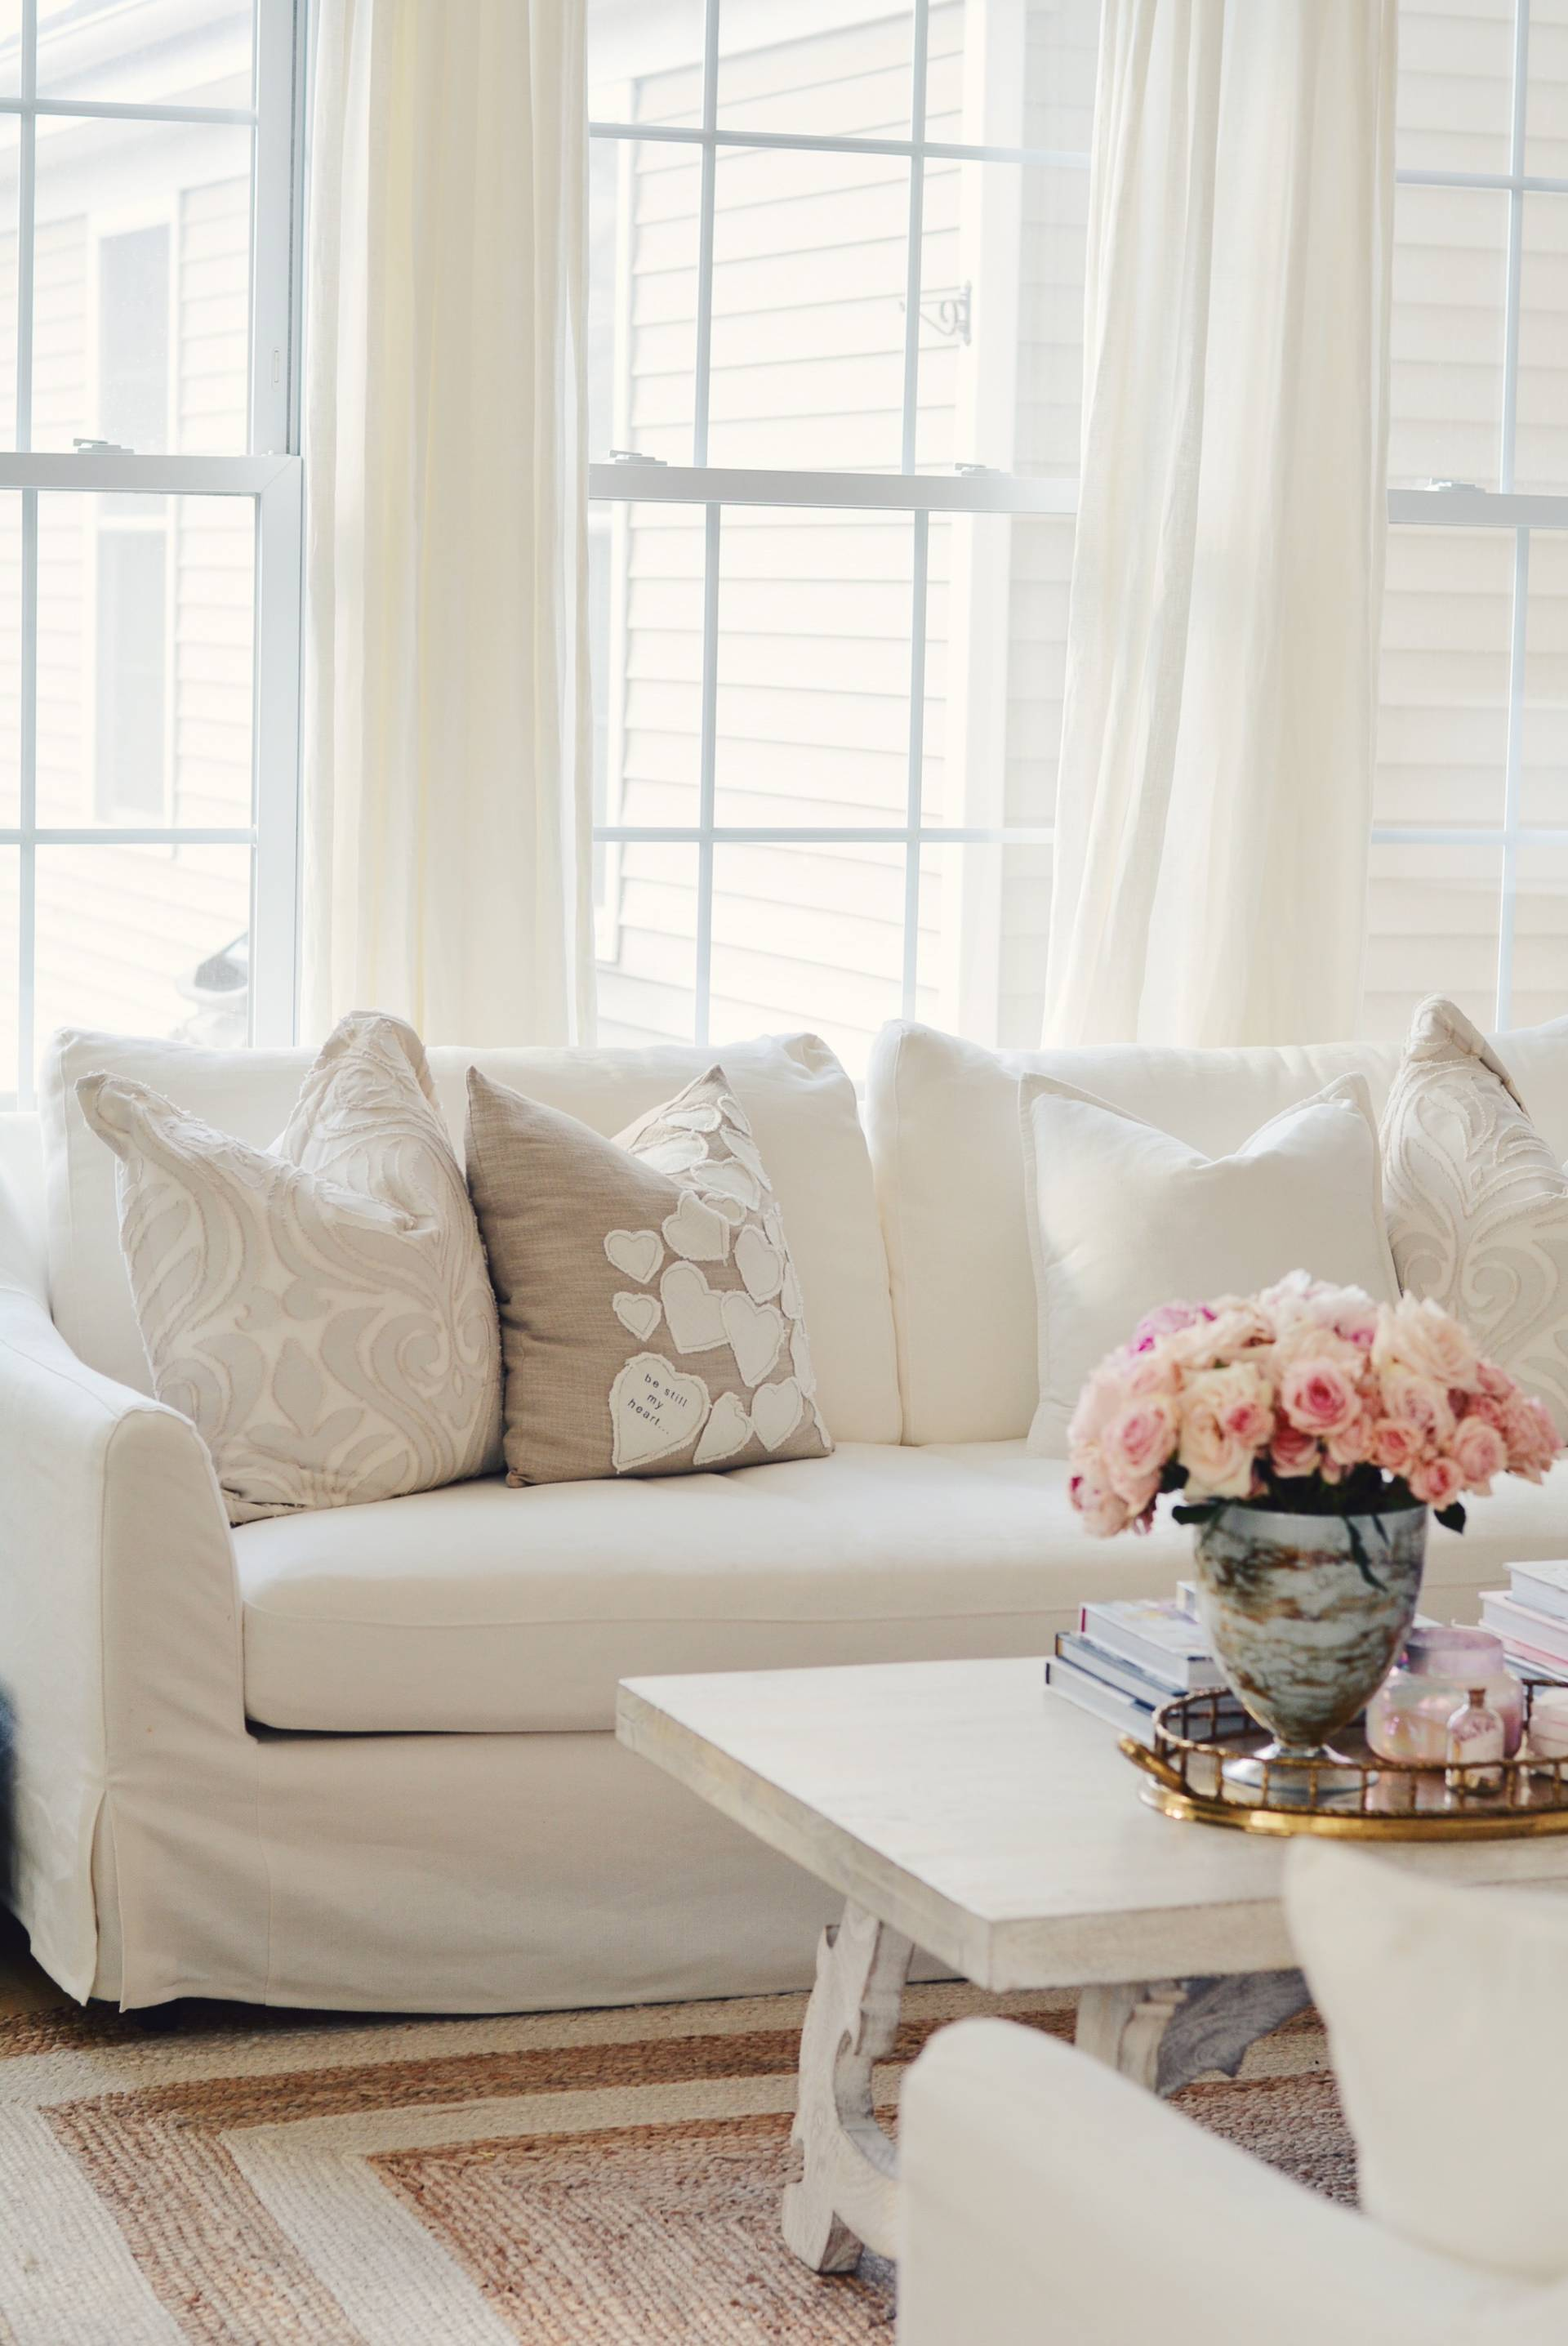 A lot goes into a sofa that's both stylish and comfortable to revisit this article, visit my profile, thenview saved stories. The Ikea Farlov Sofa & Bemz Designs Covers Review - The ...